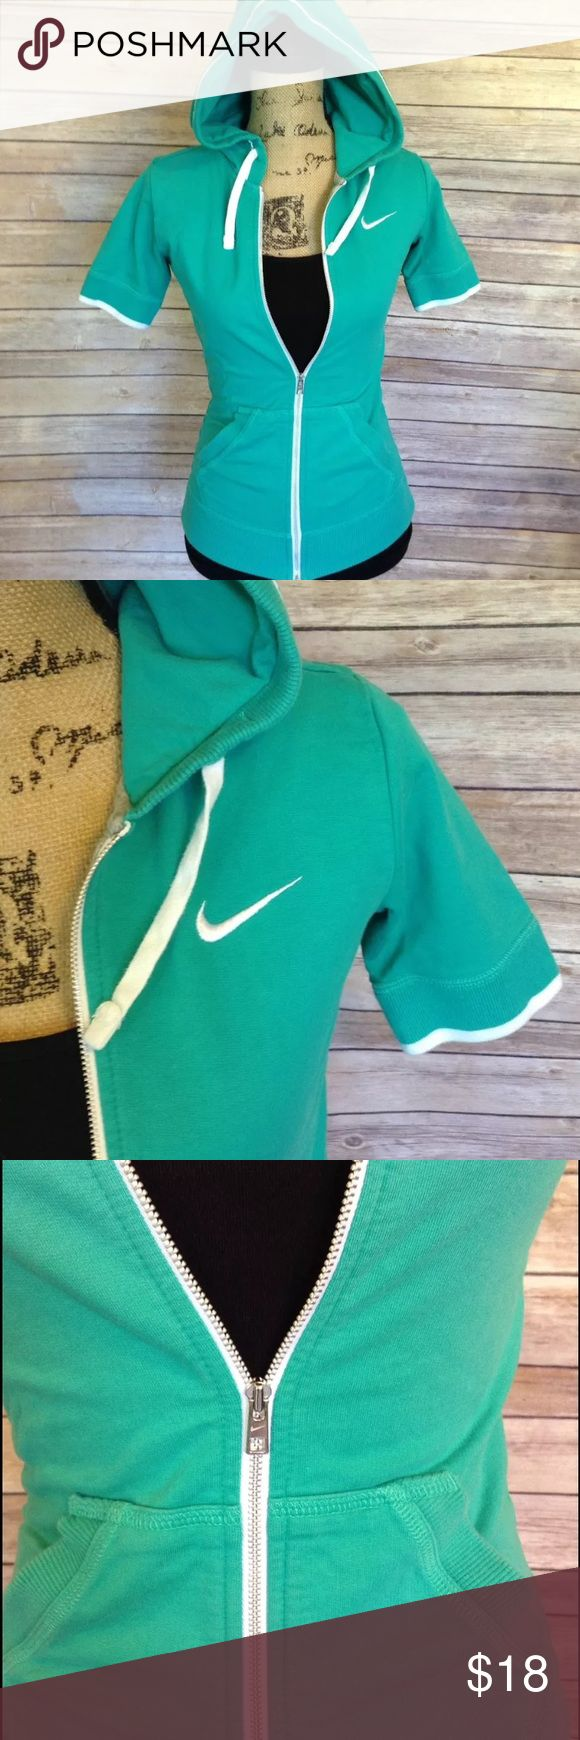 "Nike size XS green short sleeve zip up hoodie Pre-owned Nike women's size XS green short sleeve zip up hoodie. Excellent used condition. No rips holes or stains. 100% cotton.   Measurements:  Armpit to armpit- 15.5""  Armpit to sleeve- 4.5""  Length- 23.5""   I ship fast! Pay before 4:30pm Monday thru Friday and I will ship the same day!  Thank you for looking!  Check out my other items! Nike Jackets & Coats"